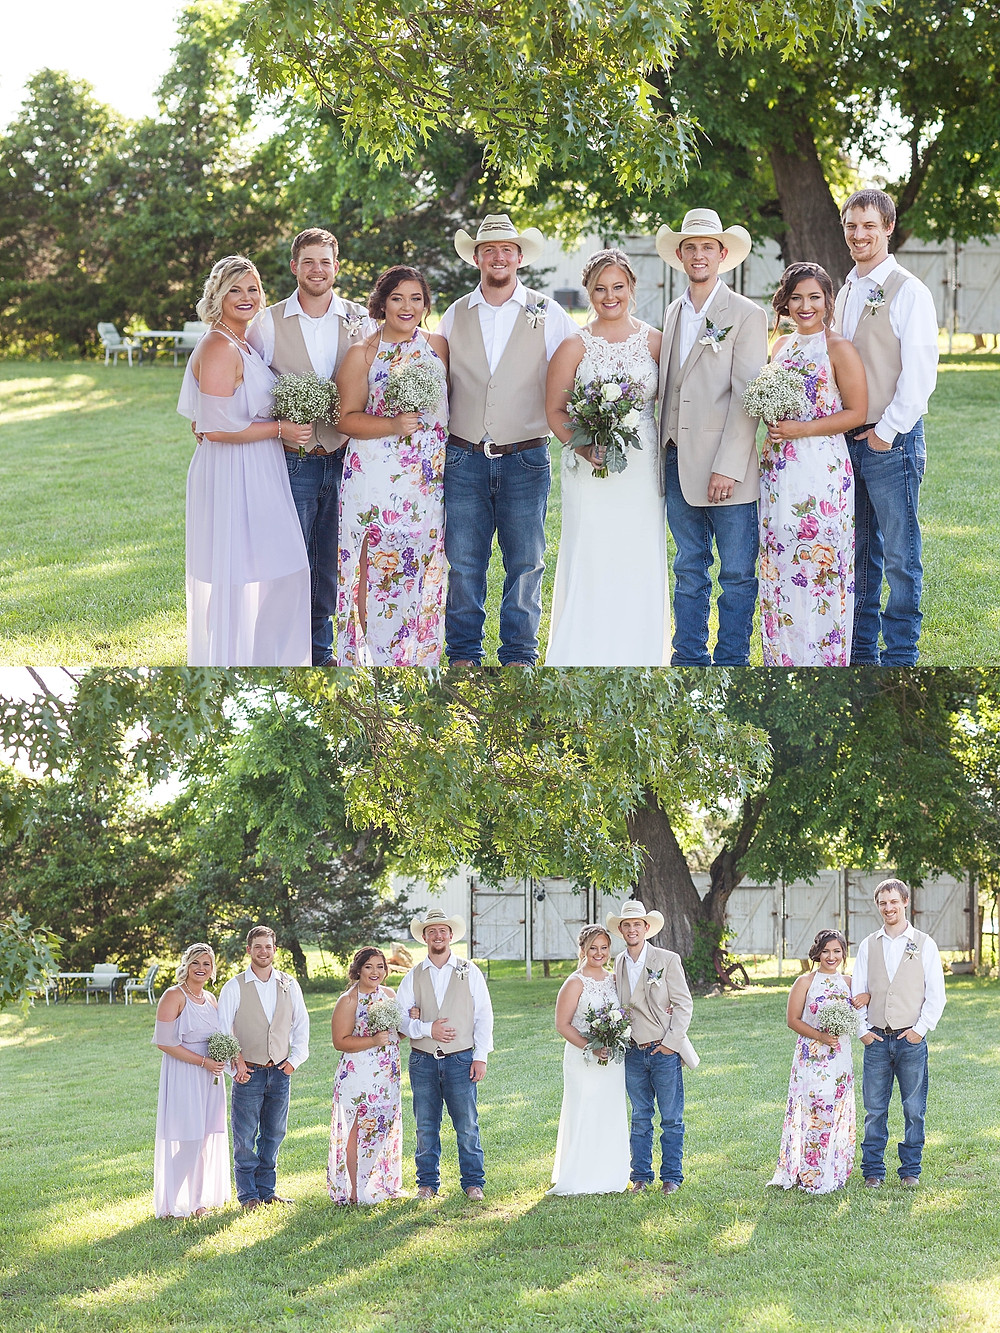 Russellvile Wedding Photographer